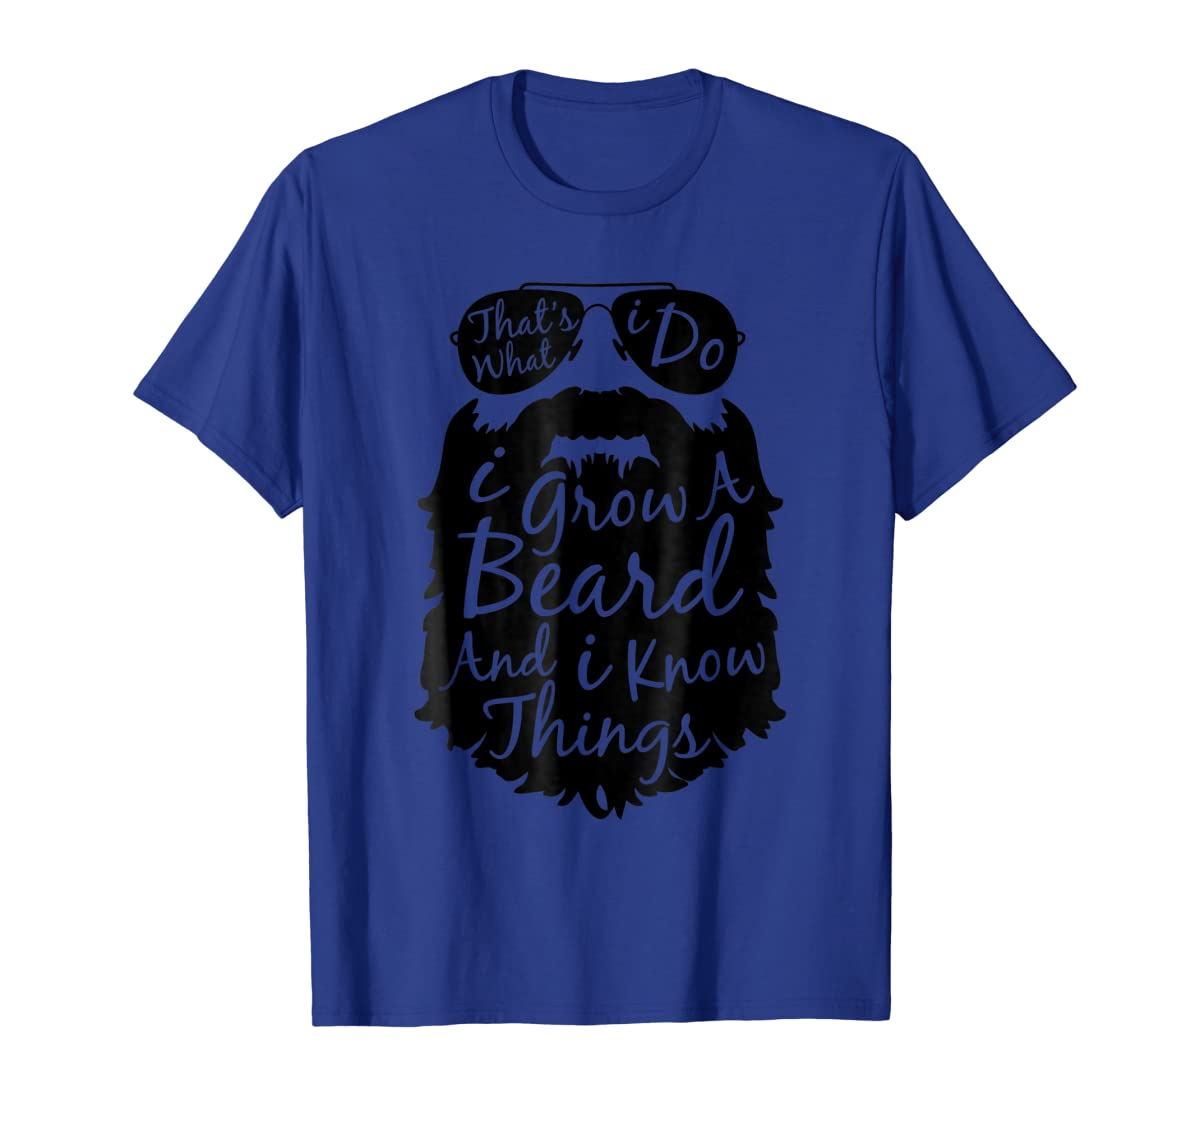 Thats what I do I grow a beard and I know things t shirt-Men's T-Shirt-Royal